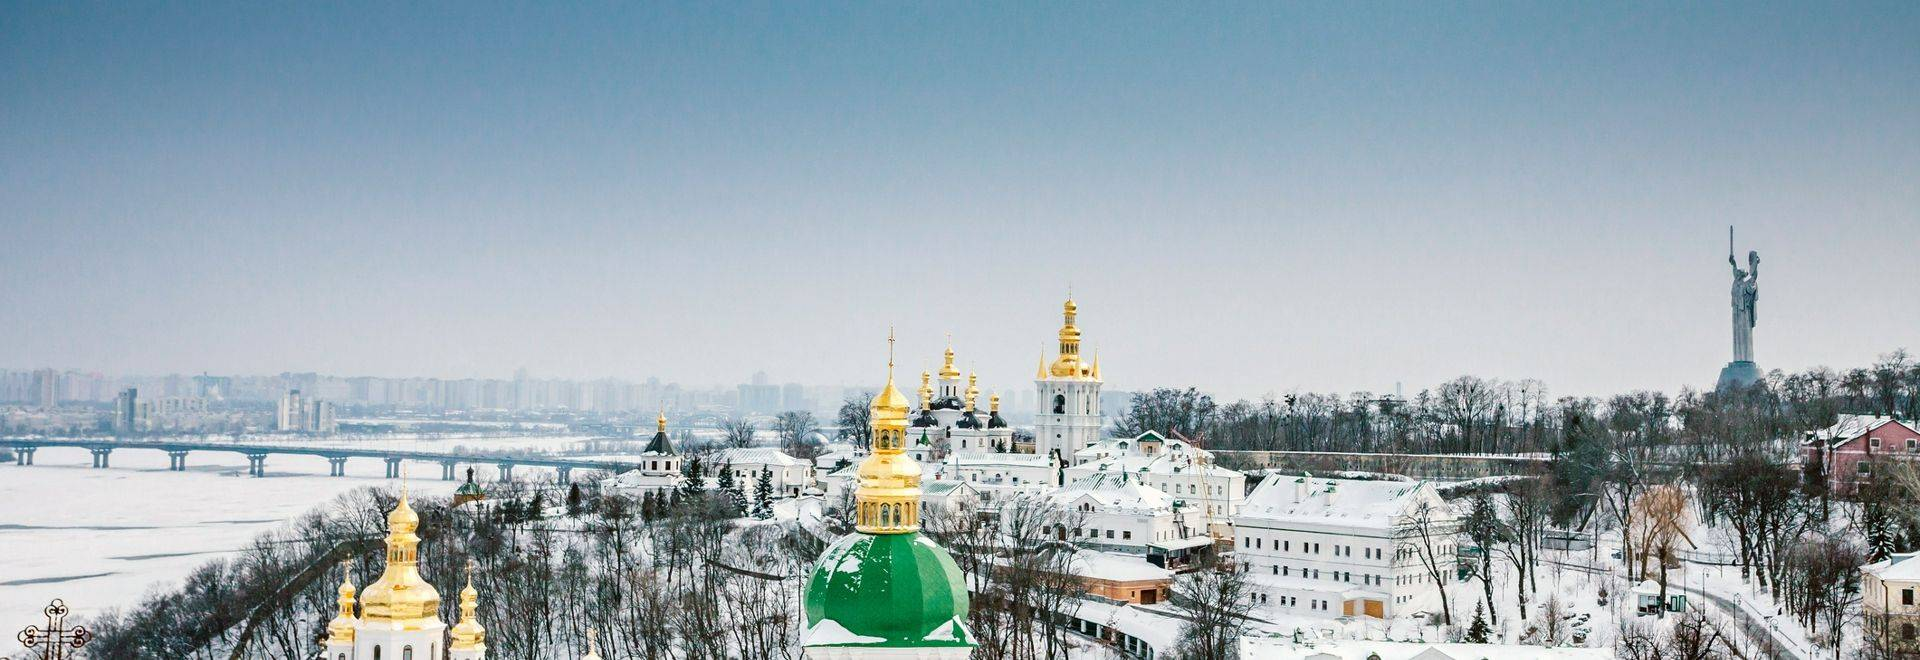 Kyiv Pechersk Lavra (aka Kyiv Monastery of the Caves) is a historic Orthodox Christian monastery which gave its name to one …